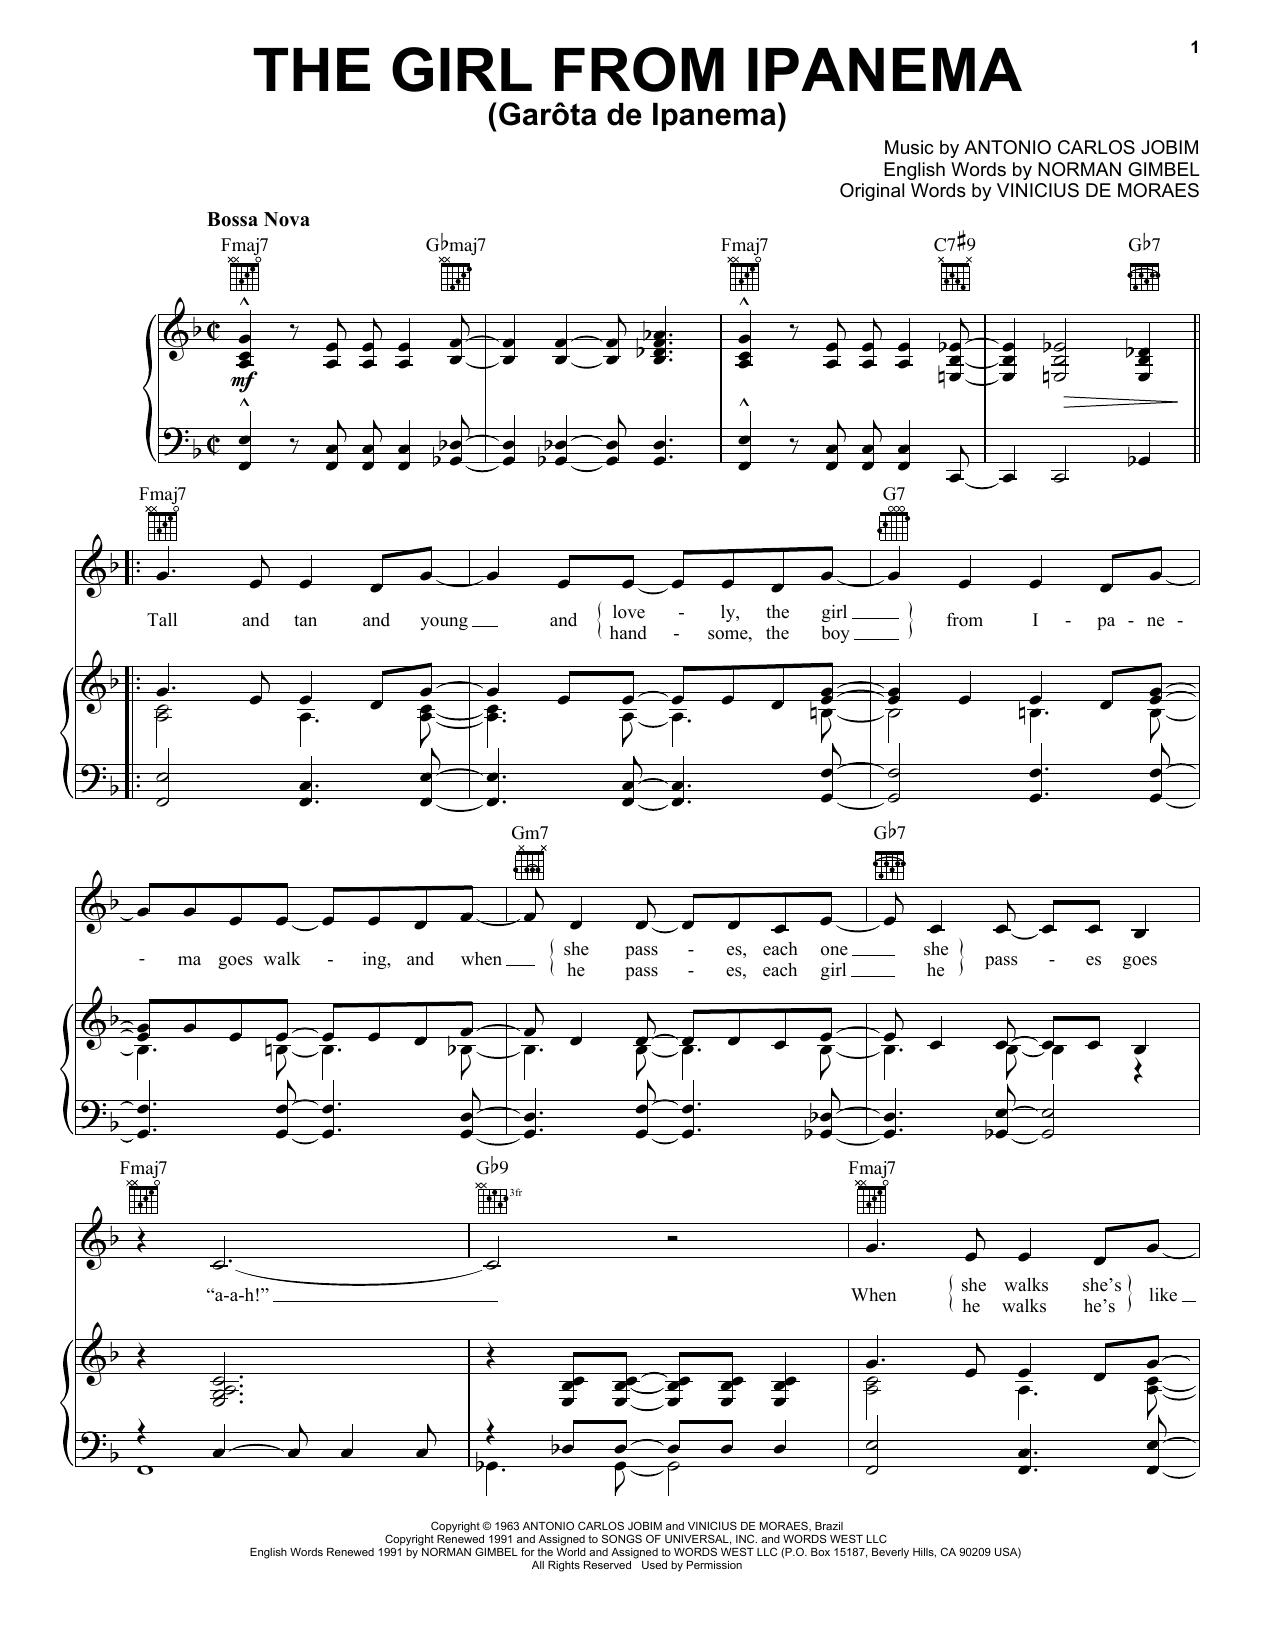 Frank Sinatra The Girl From Ipanema (Garota De Ipanema) sheet music notes printable PDF score